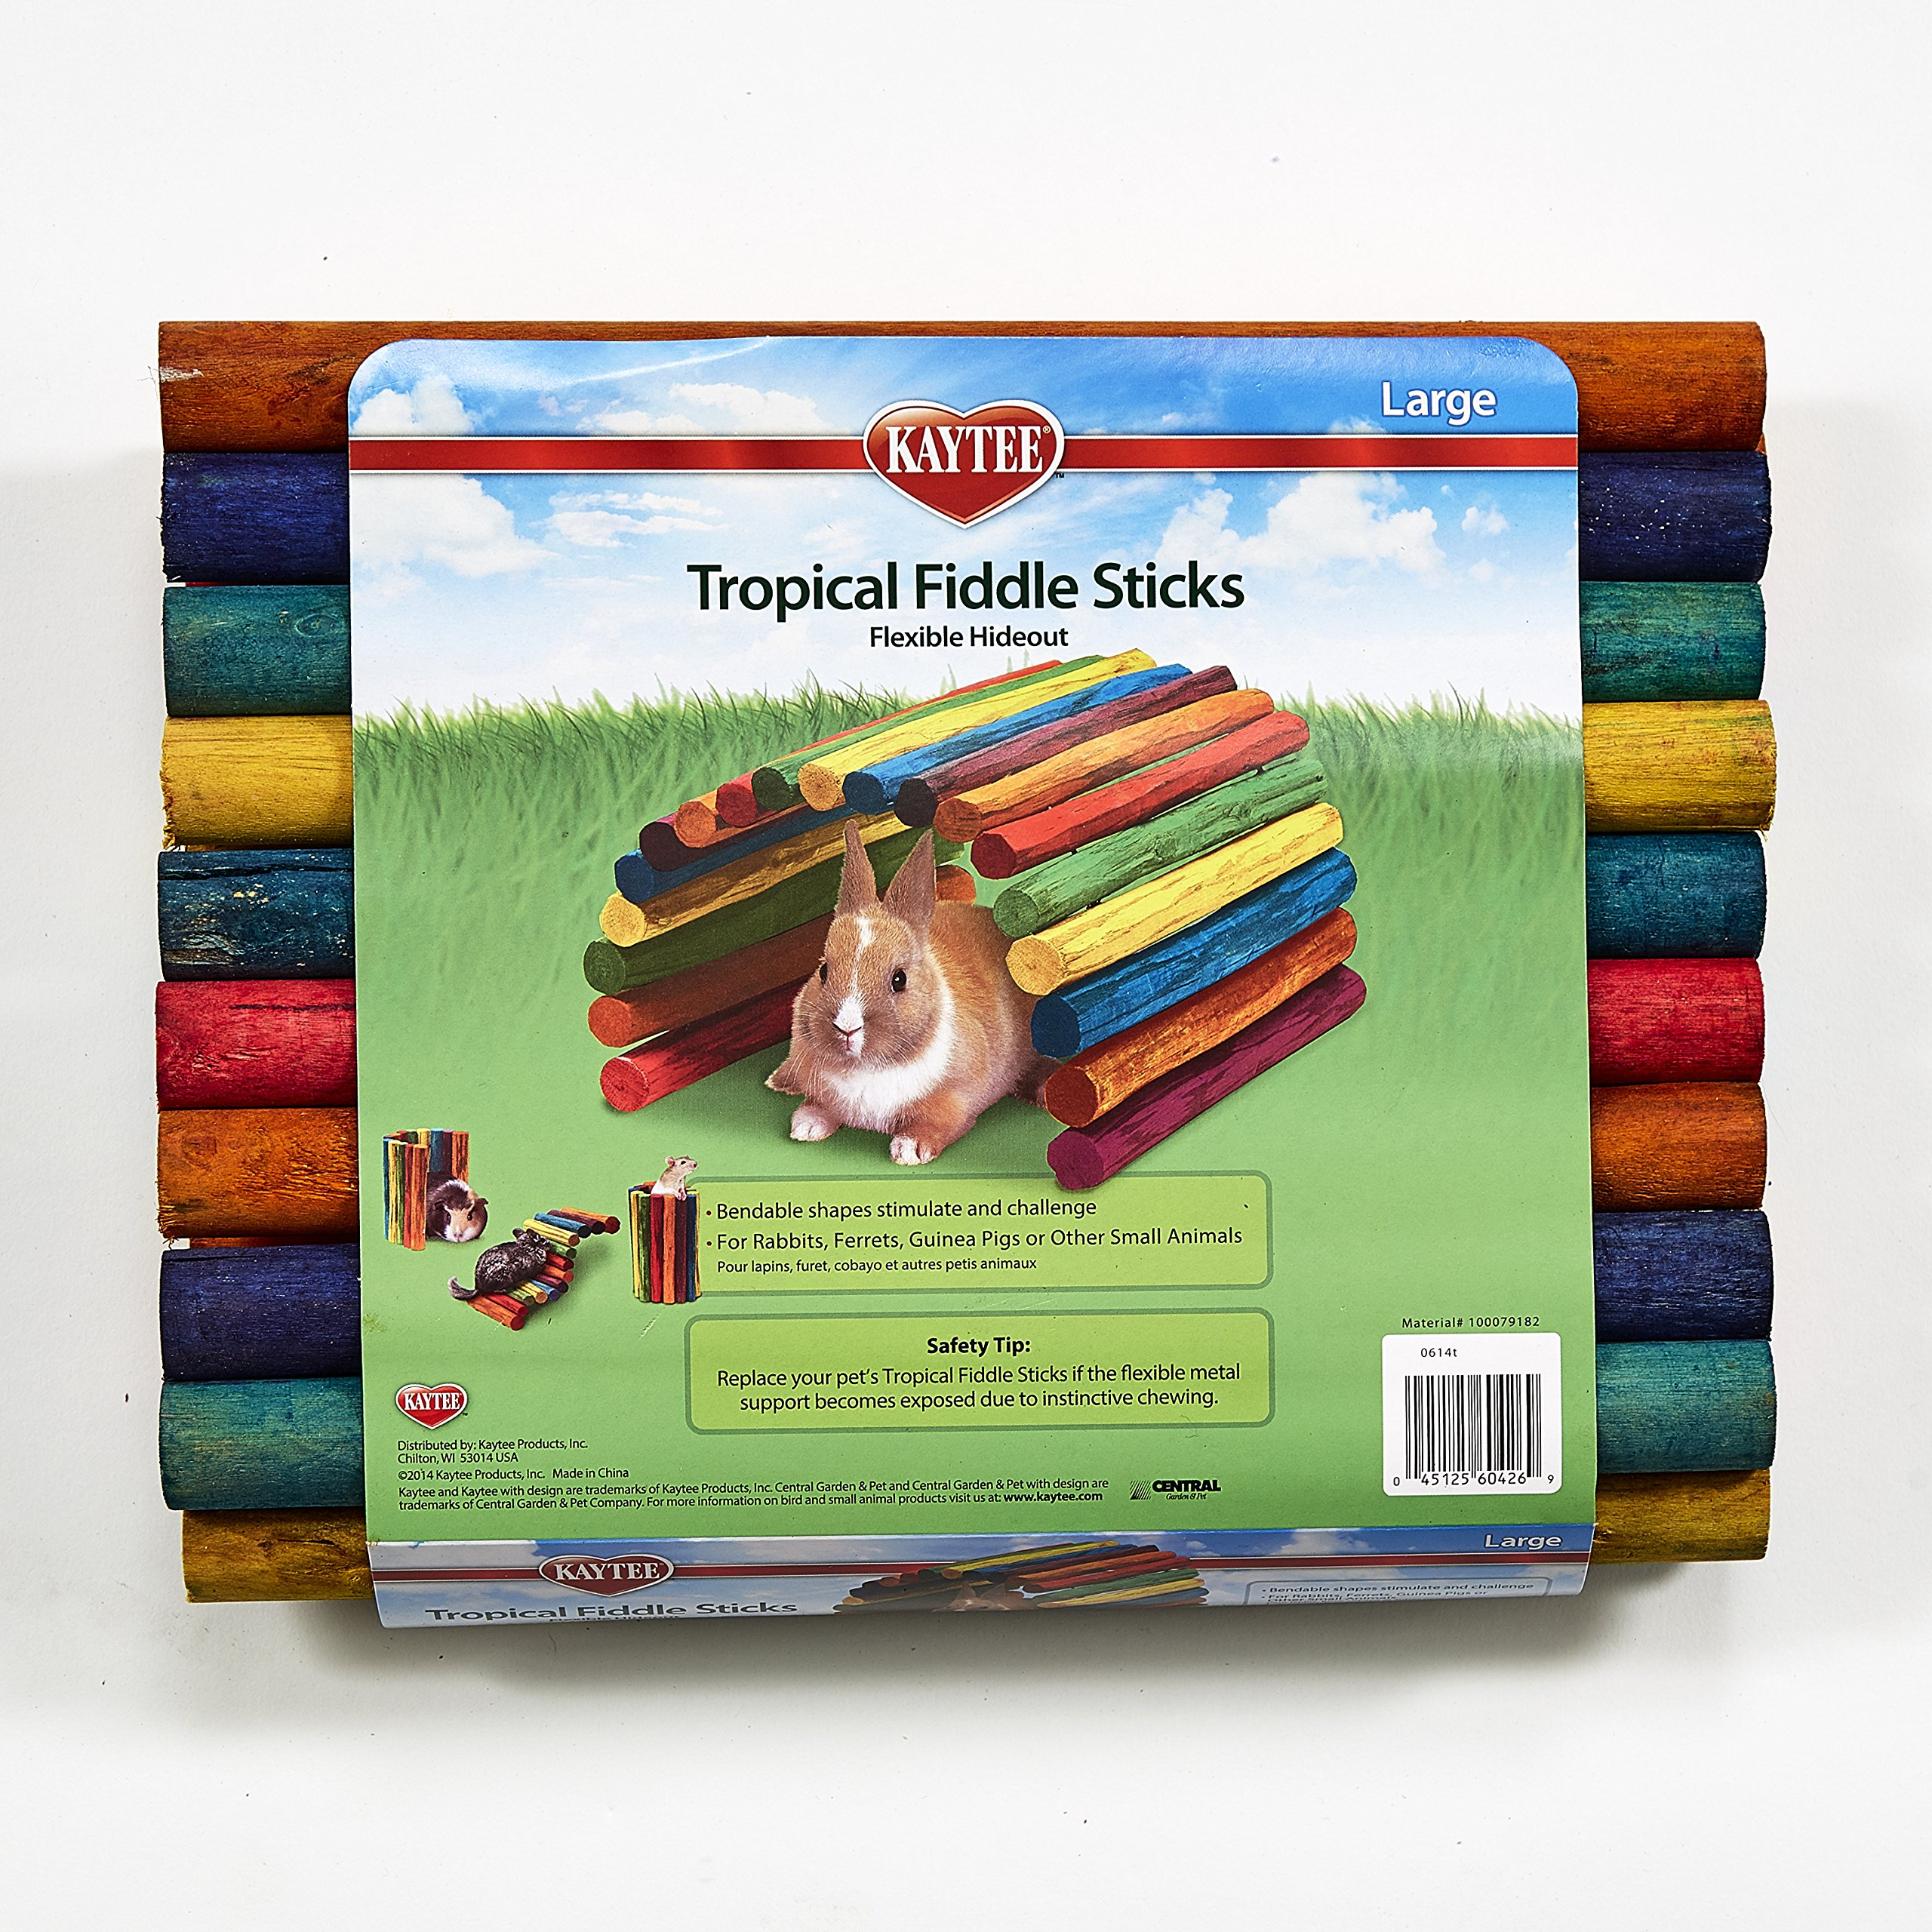 Kaytee Tropical Fiddle Sticks Flexible Hideout - Large